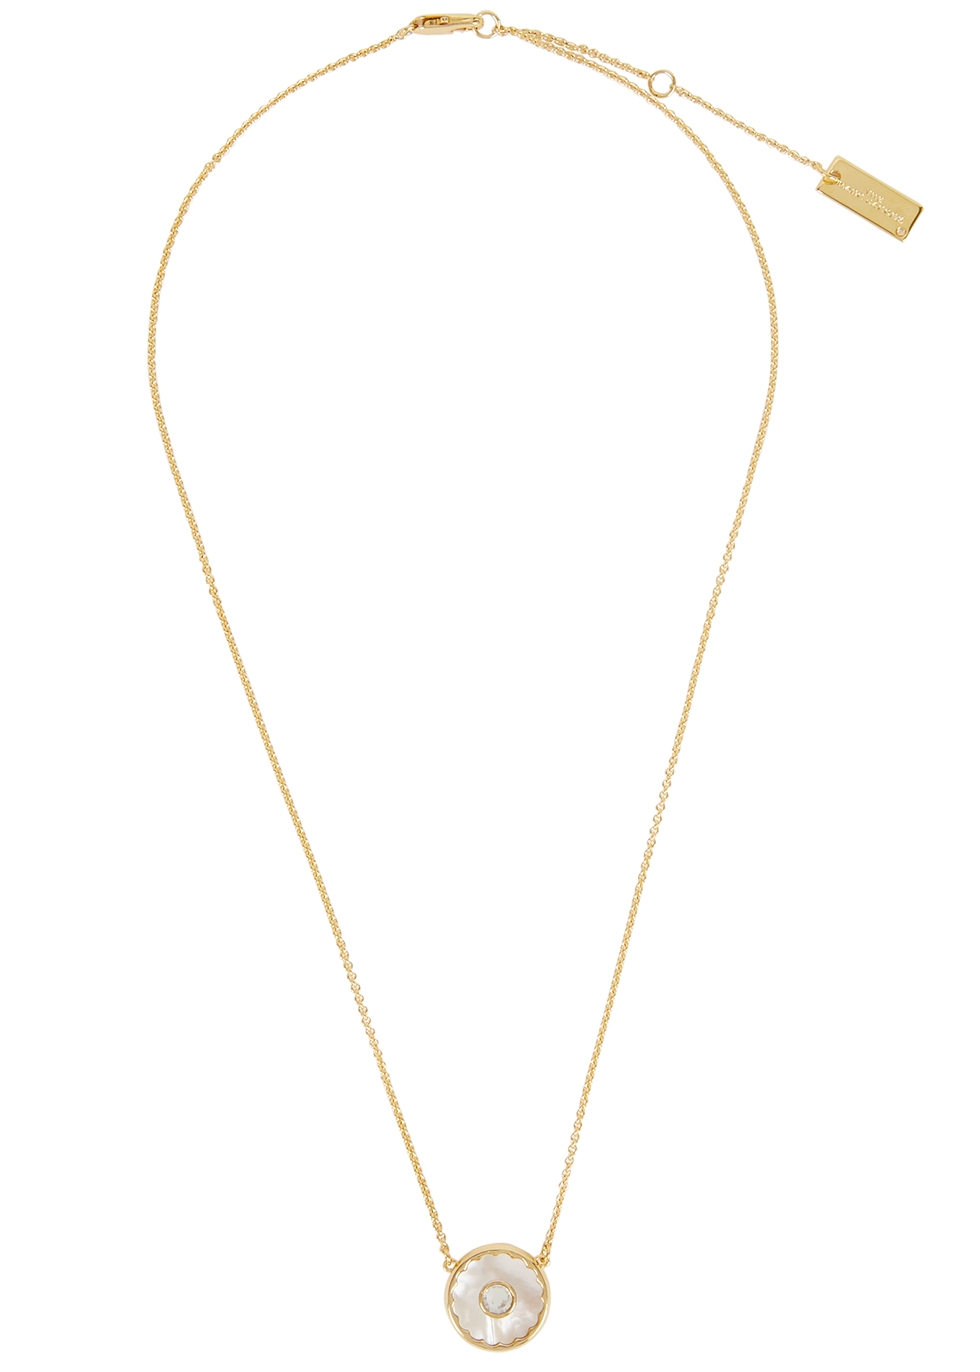 The Medallion gold-tone necklace